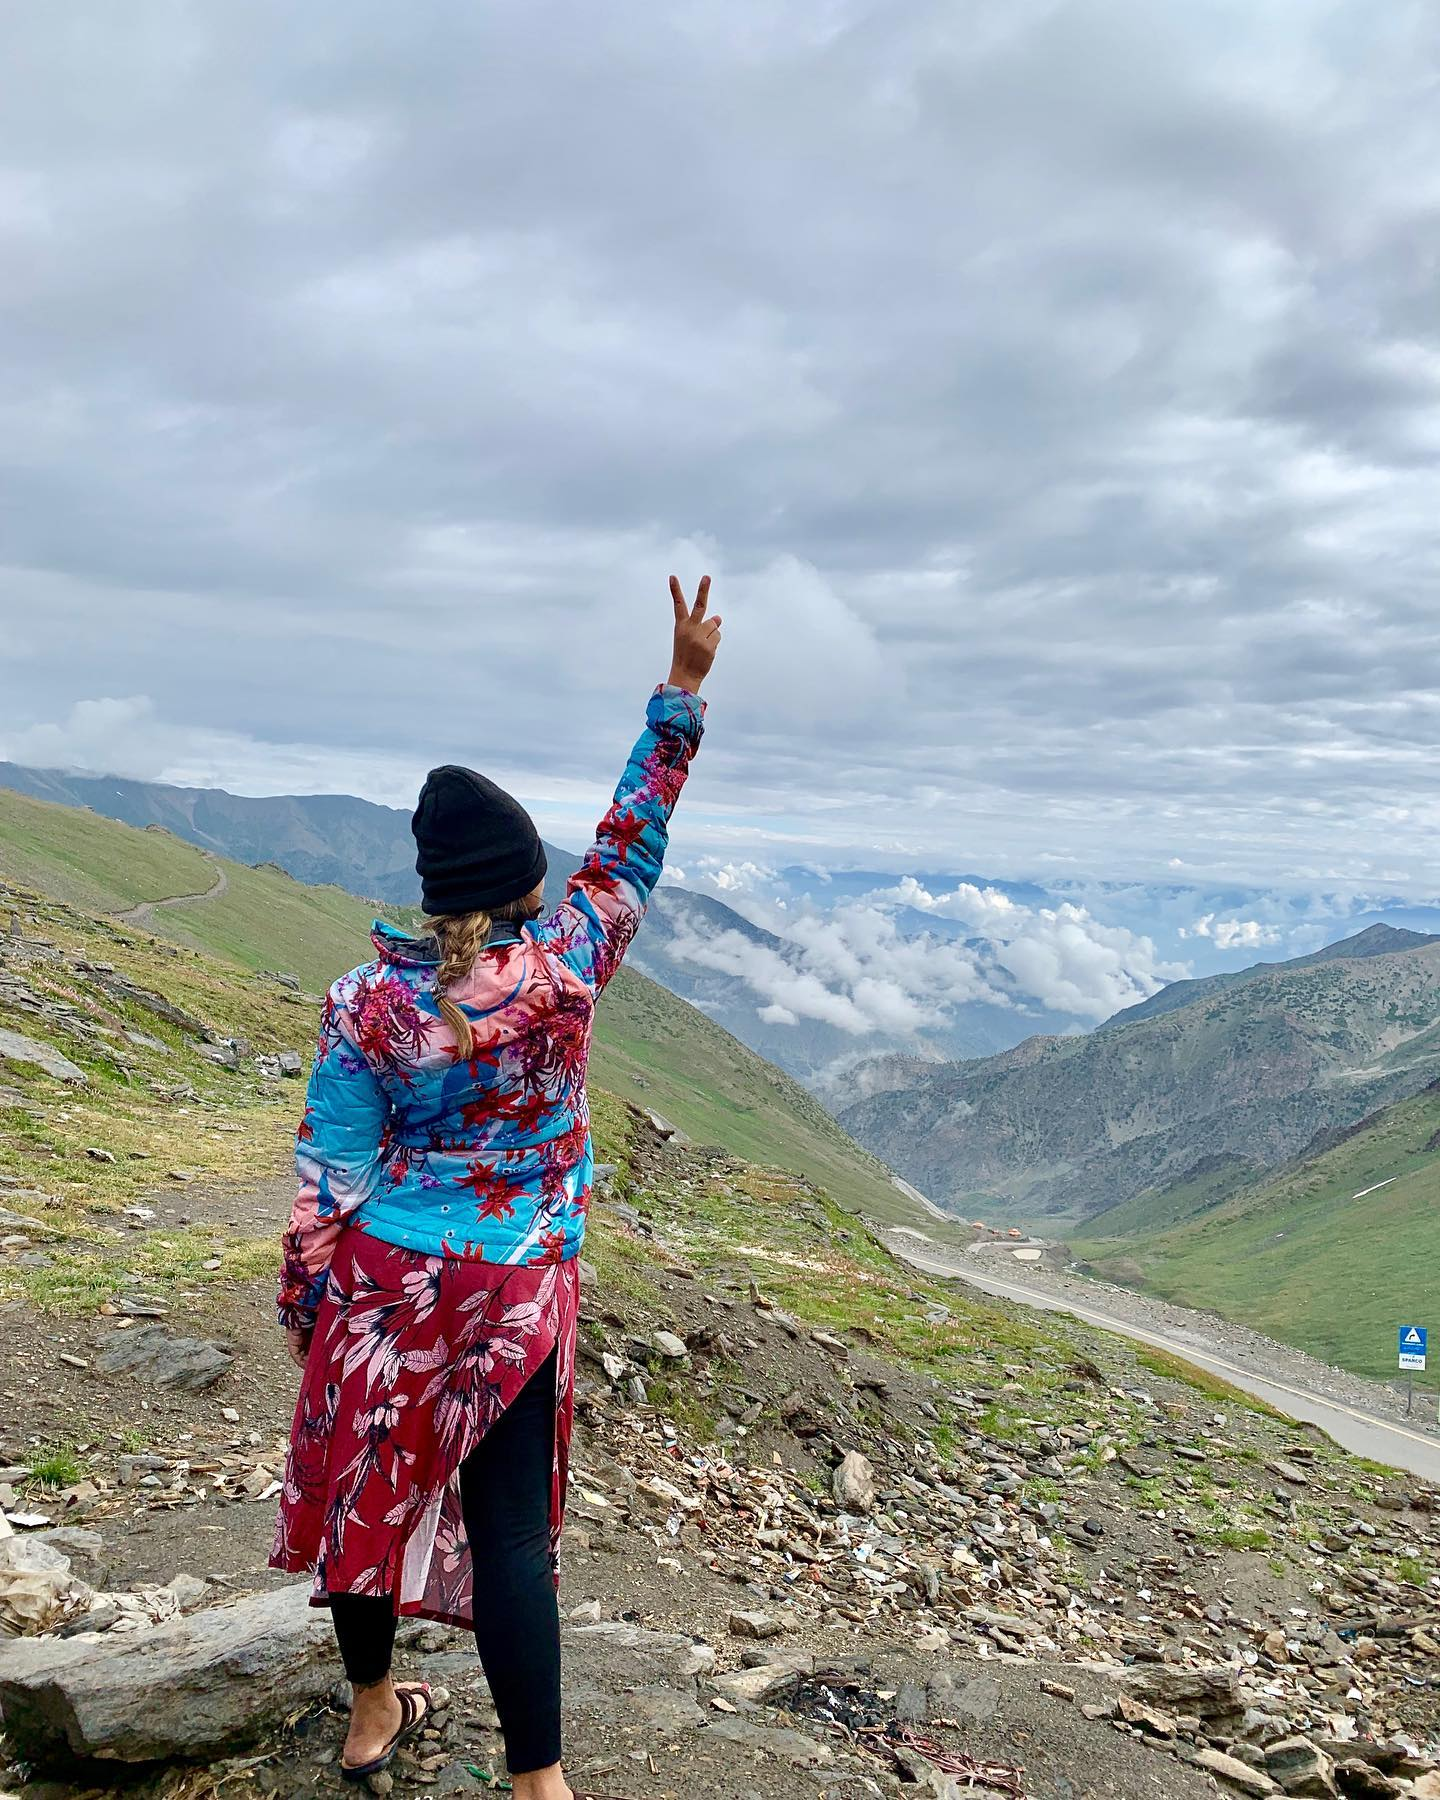 Kach Solo Travels in 2019 This is Pakistan My country 6.jpg